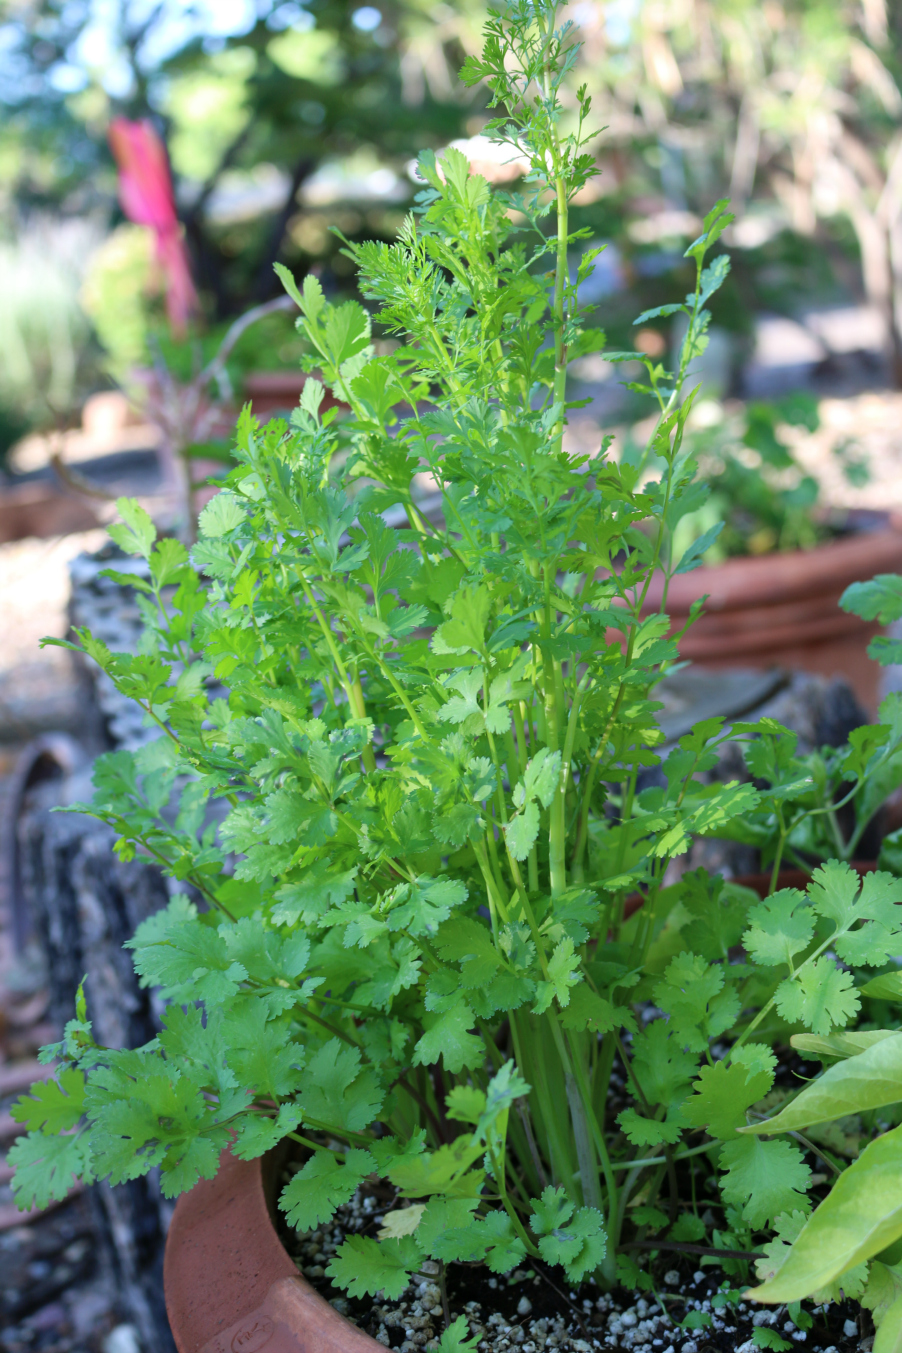 A Cilantro Herb reseeded from last year's crop